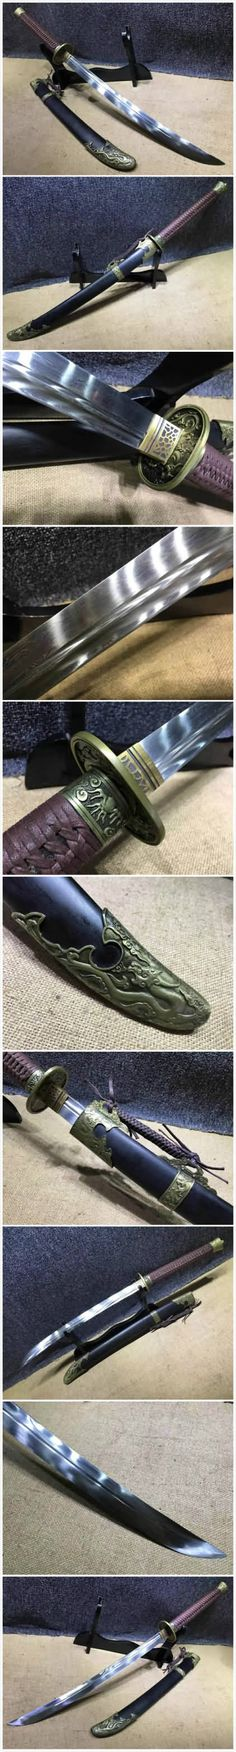 Broadsword,Damascus steel blade,Black scabbard,Alloy fitting,Length 35 inch